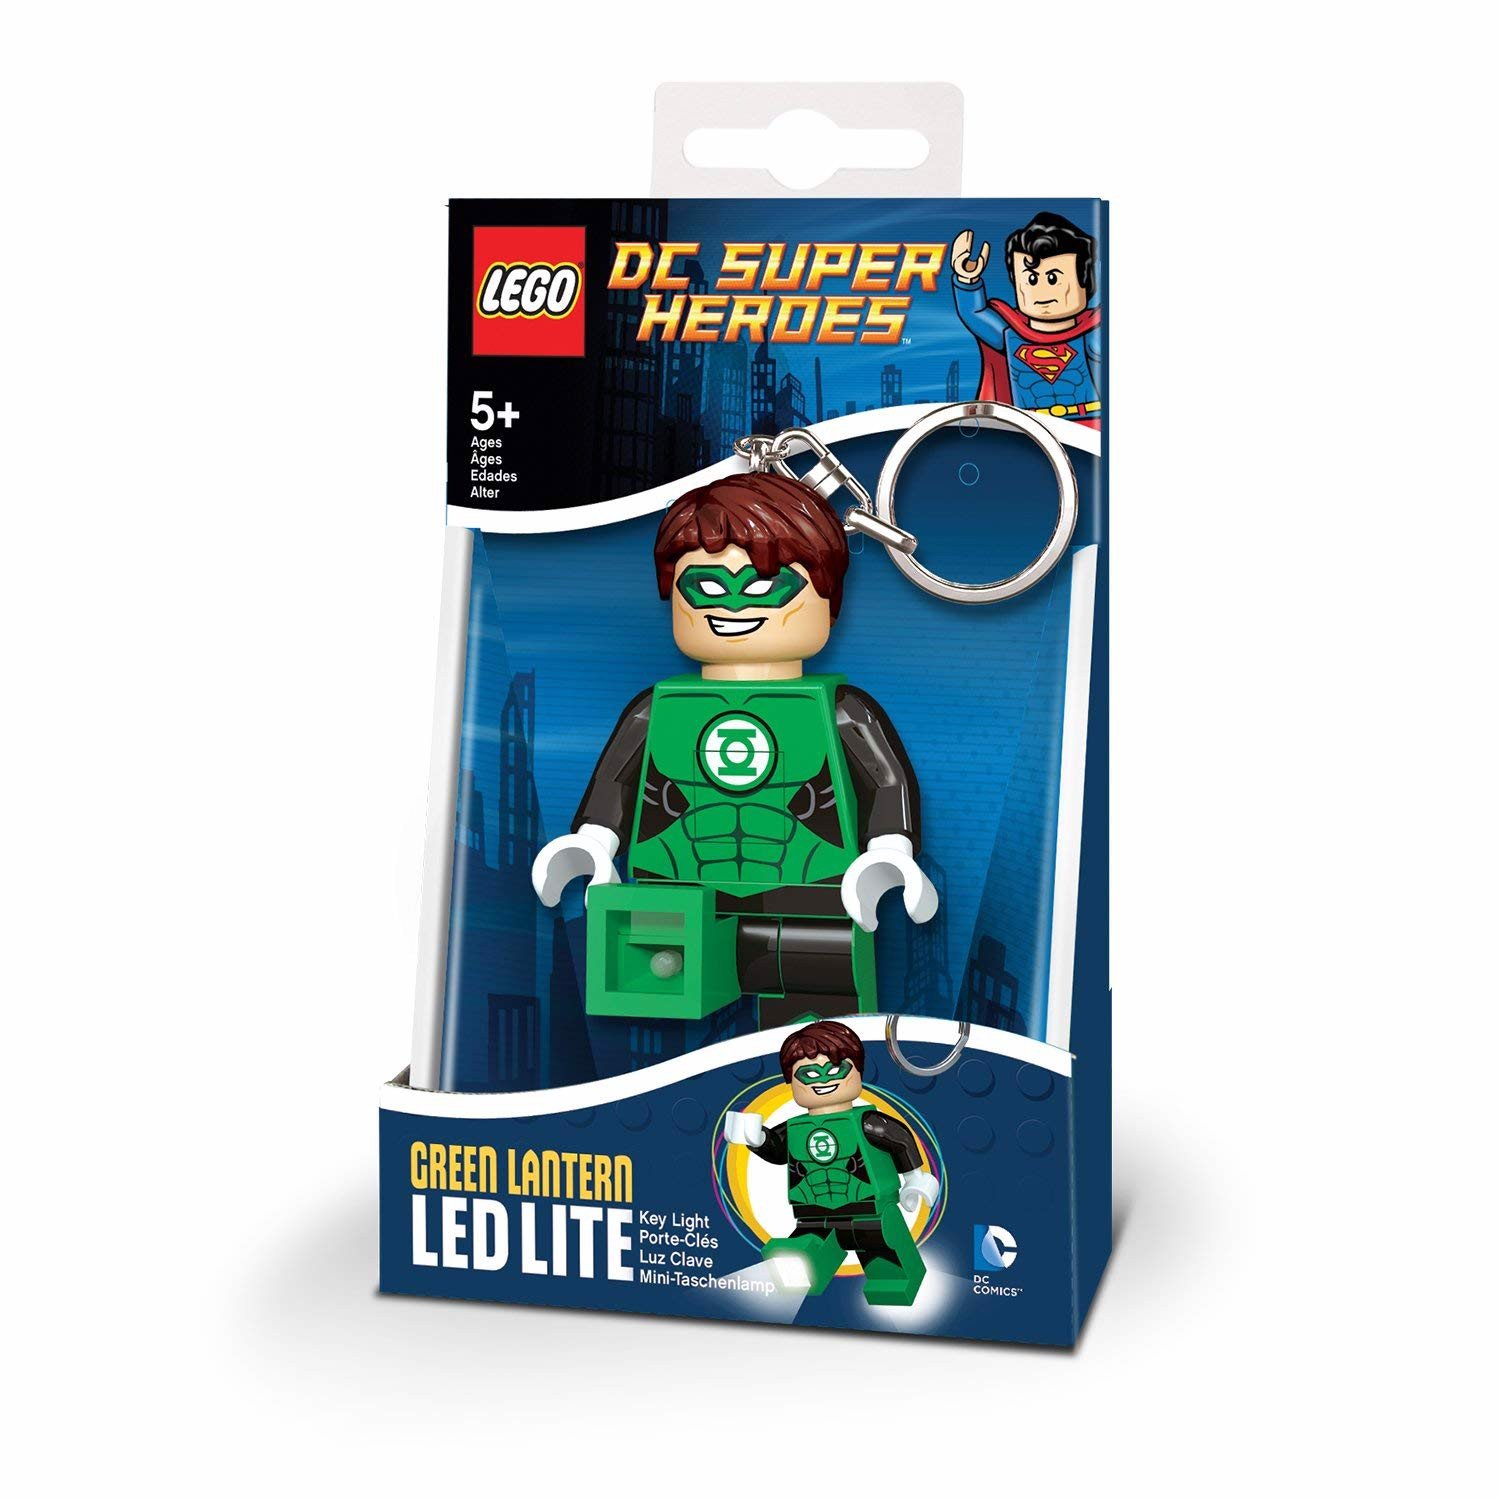 LEGO DC Super Heroes Green Lantern Led Lite